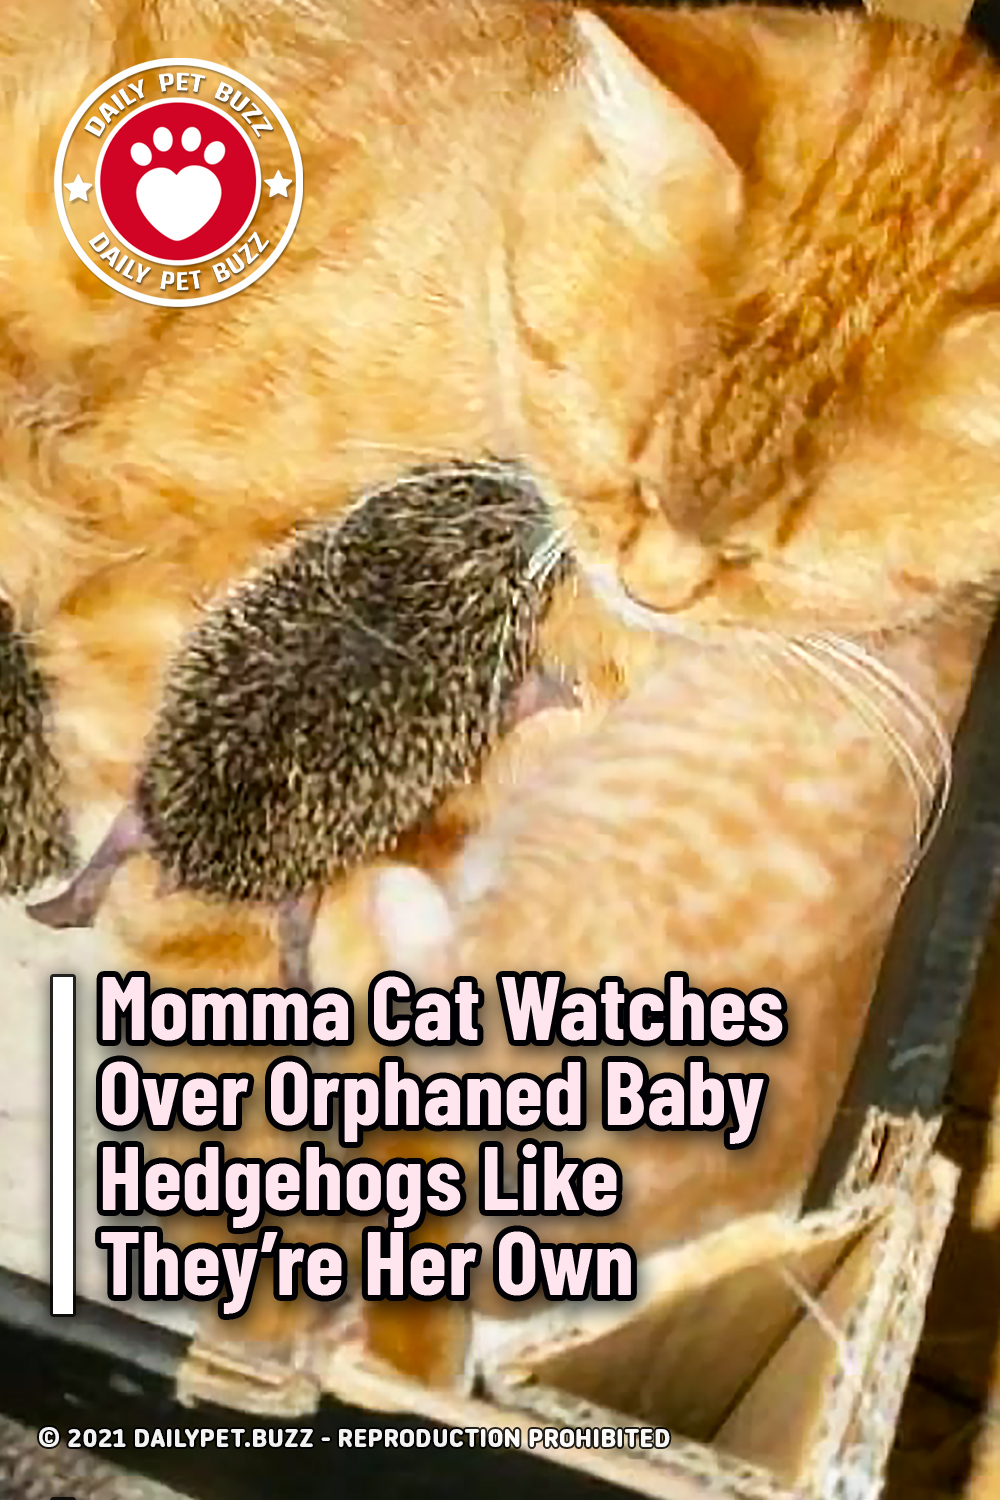 Momma Cat Watches Over Orphaned Baby Hedgehogs Like They're Her Own